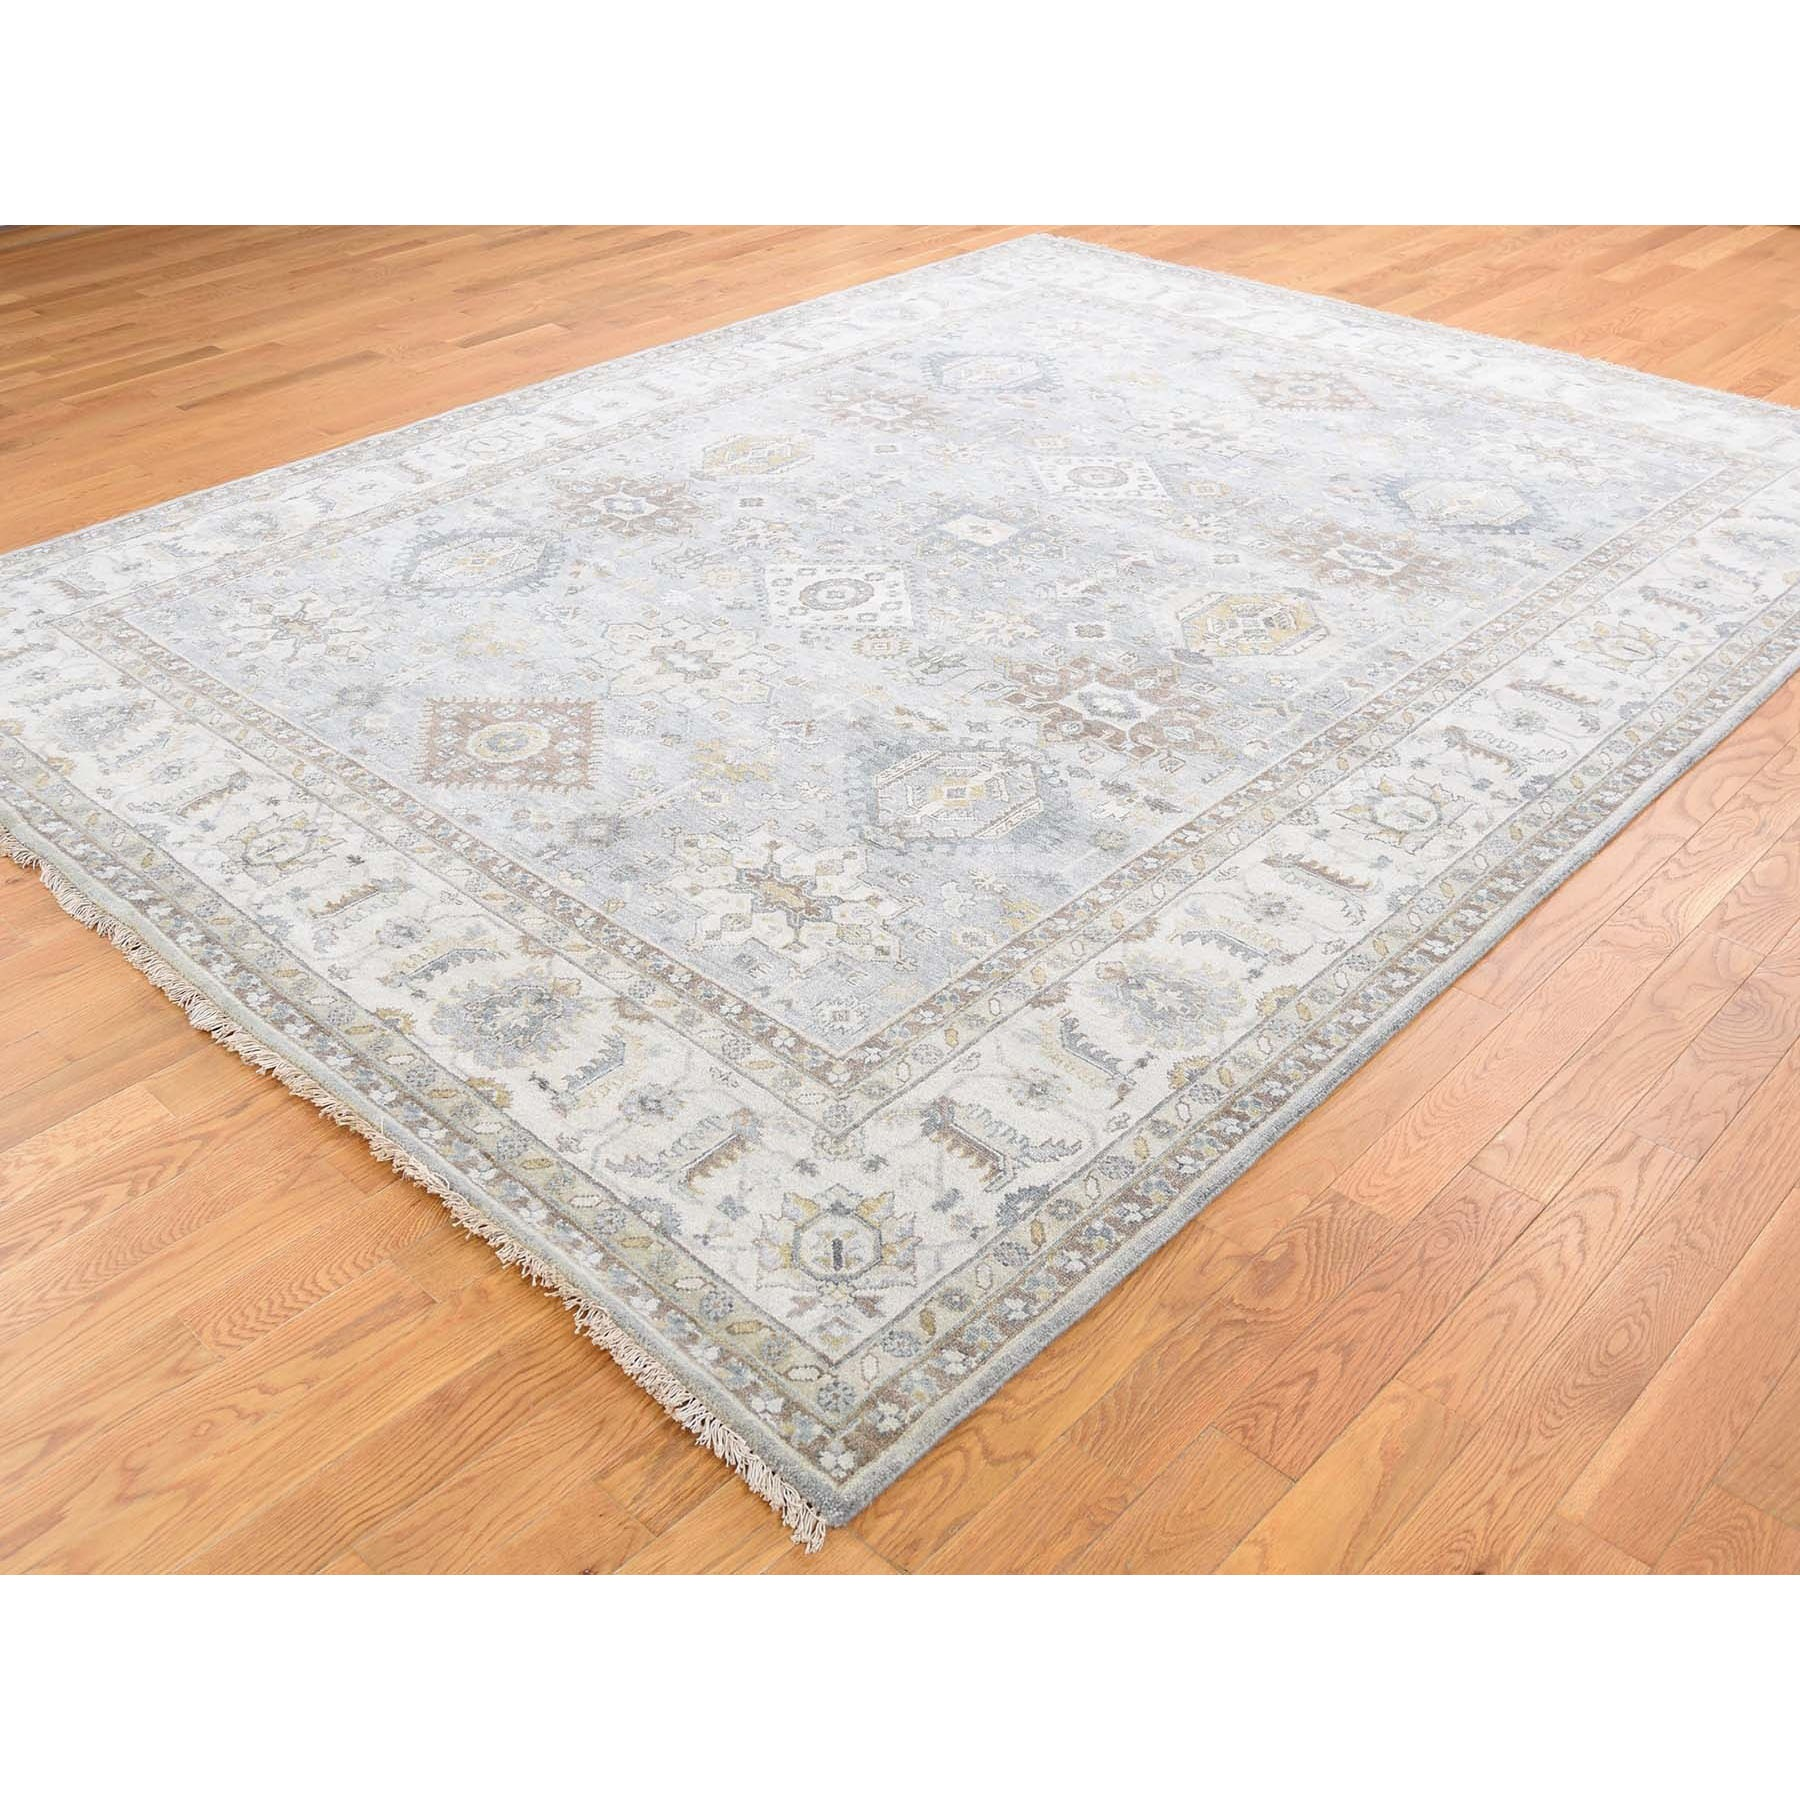 8'x10' Karajeh Design Pure Wool Gray Hand Knotted Oriental Rug